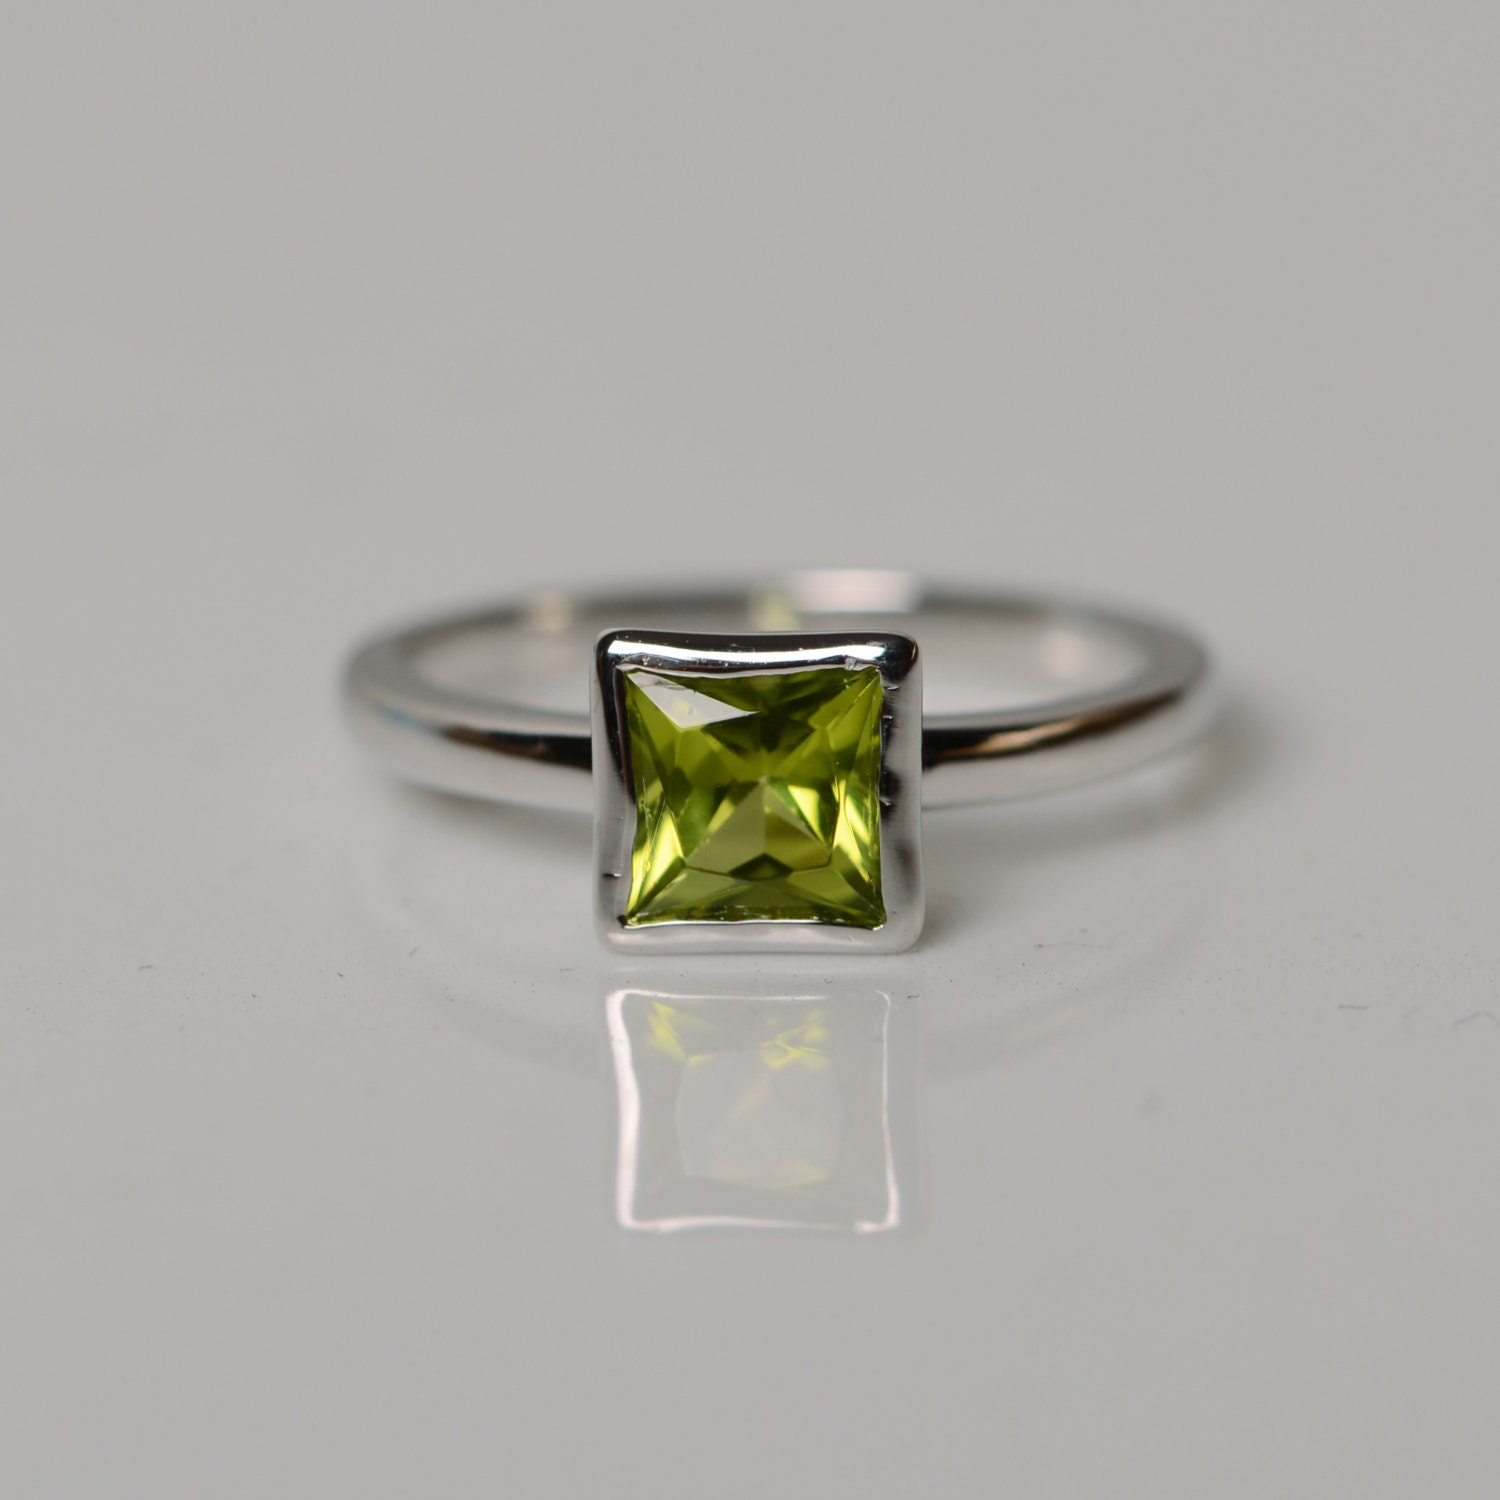 birthstone products rose august peridot rings edie of engagement image ring n rock